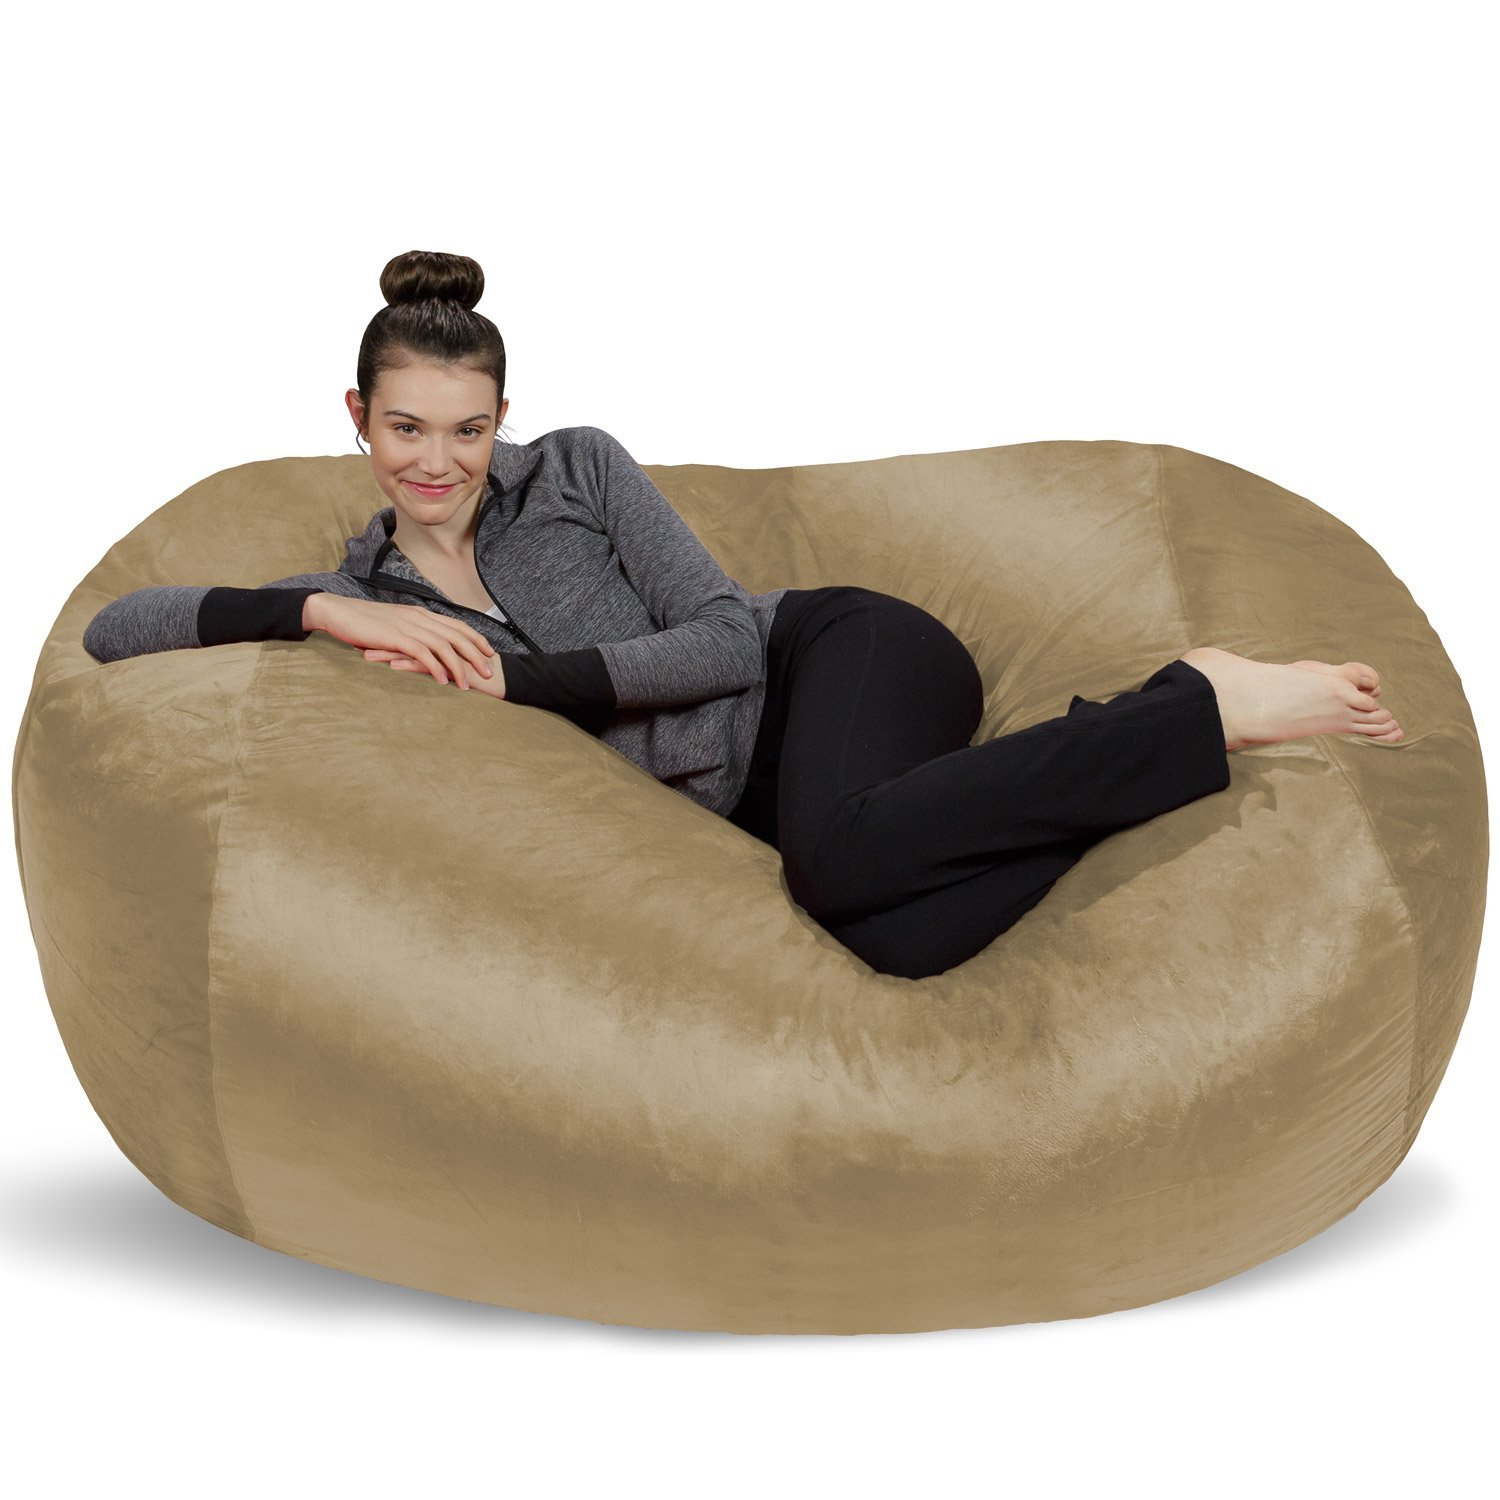 Amazon.com: Sofa Sack-Bean Bags6' Large Bean Bag Lounger, Camel: Kitchen &  Dining - Amazon.com: Sofa Sack-Bean Bags6' Large Bean Bag Lounger, Camel